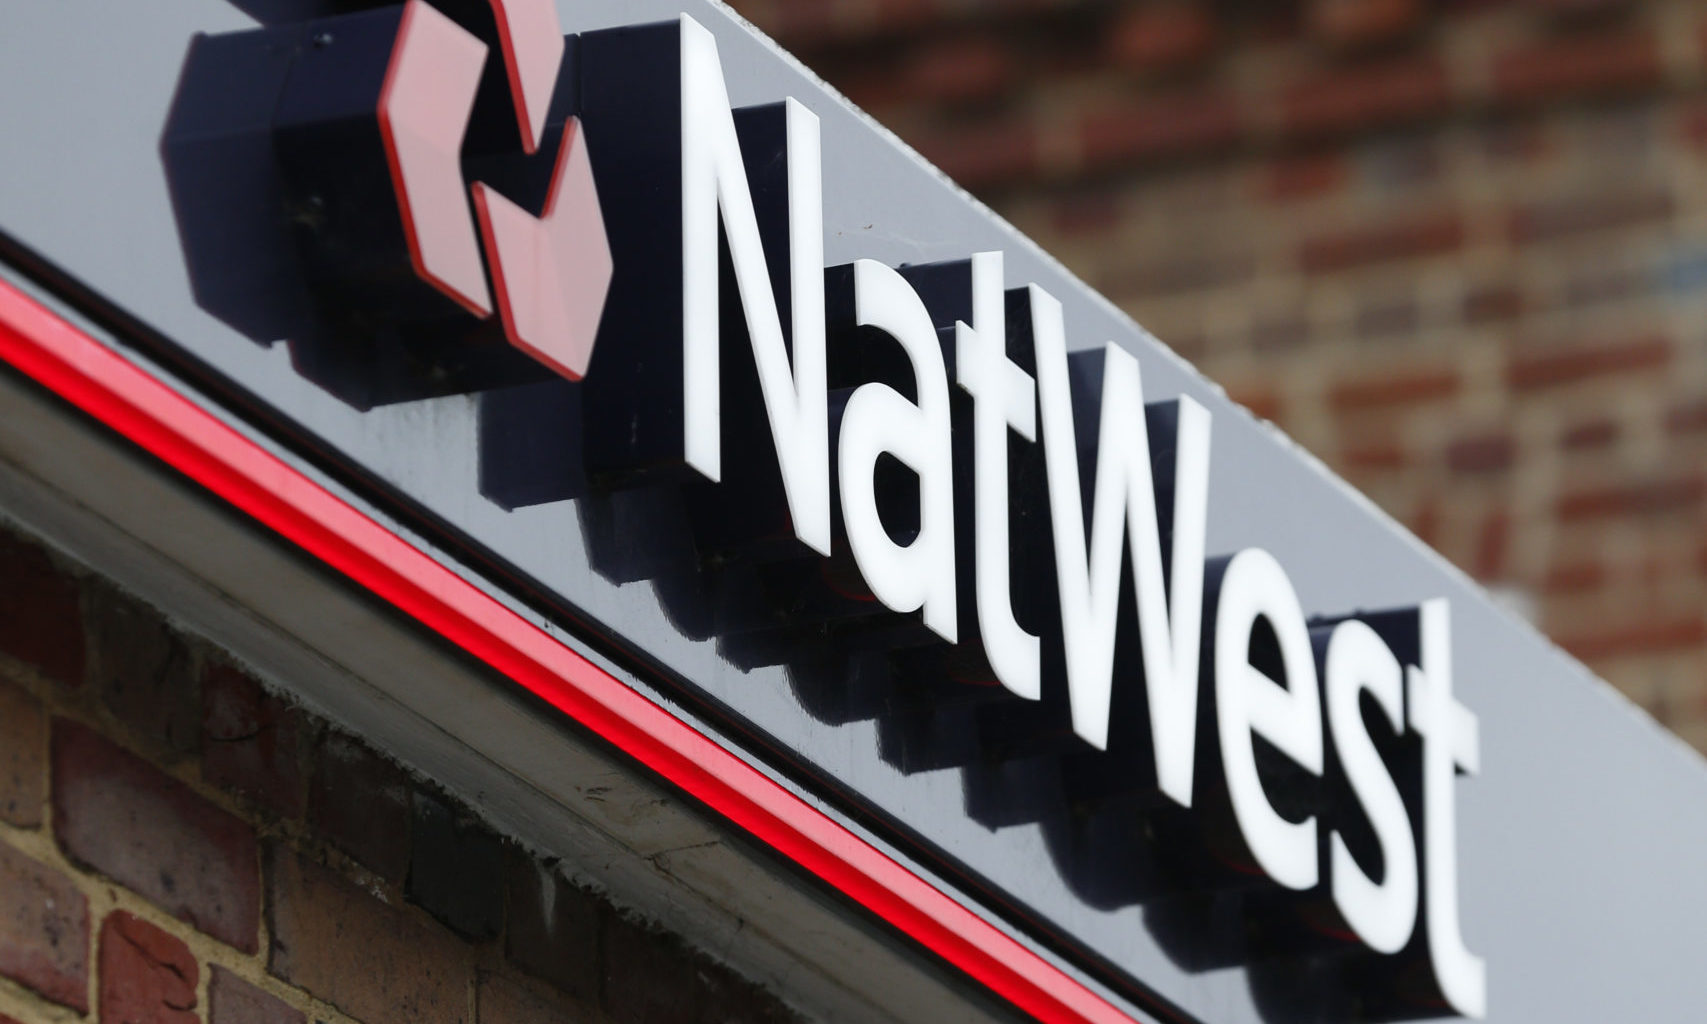 A National Westminster Bank branch (NatWest).